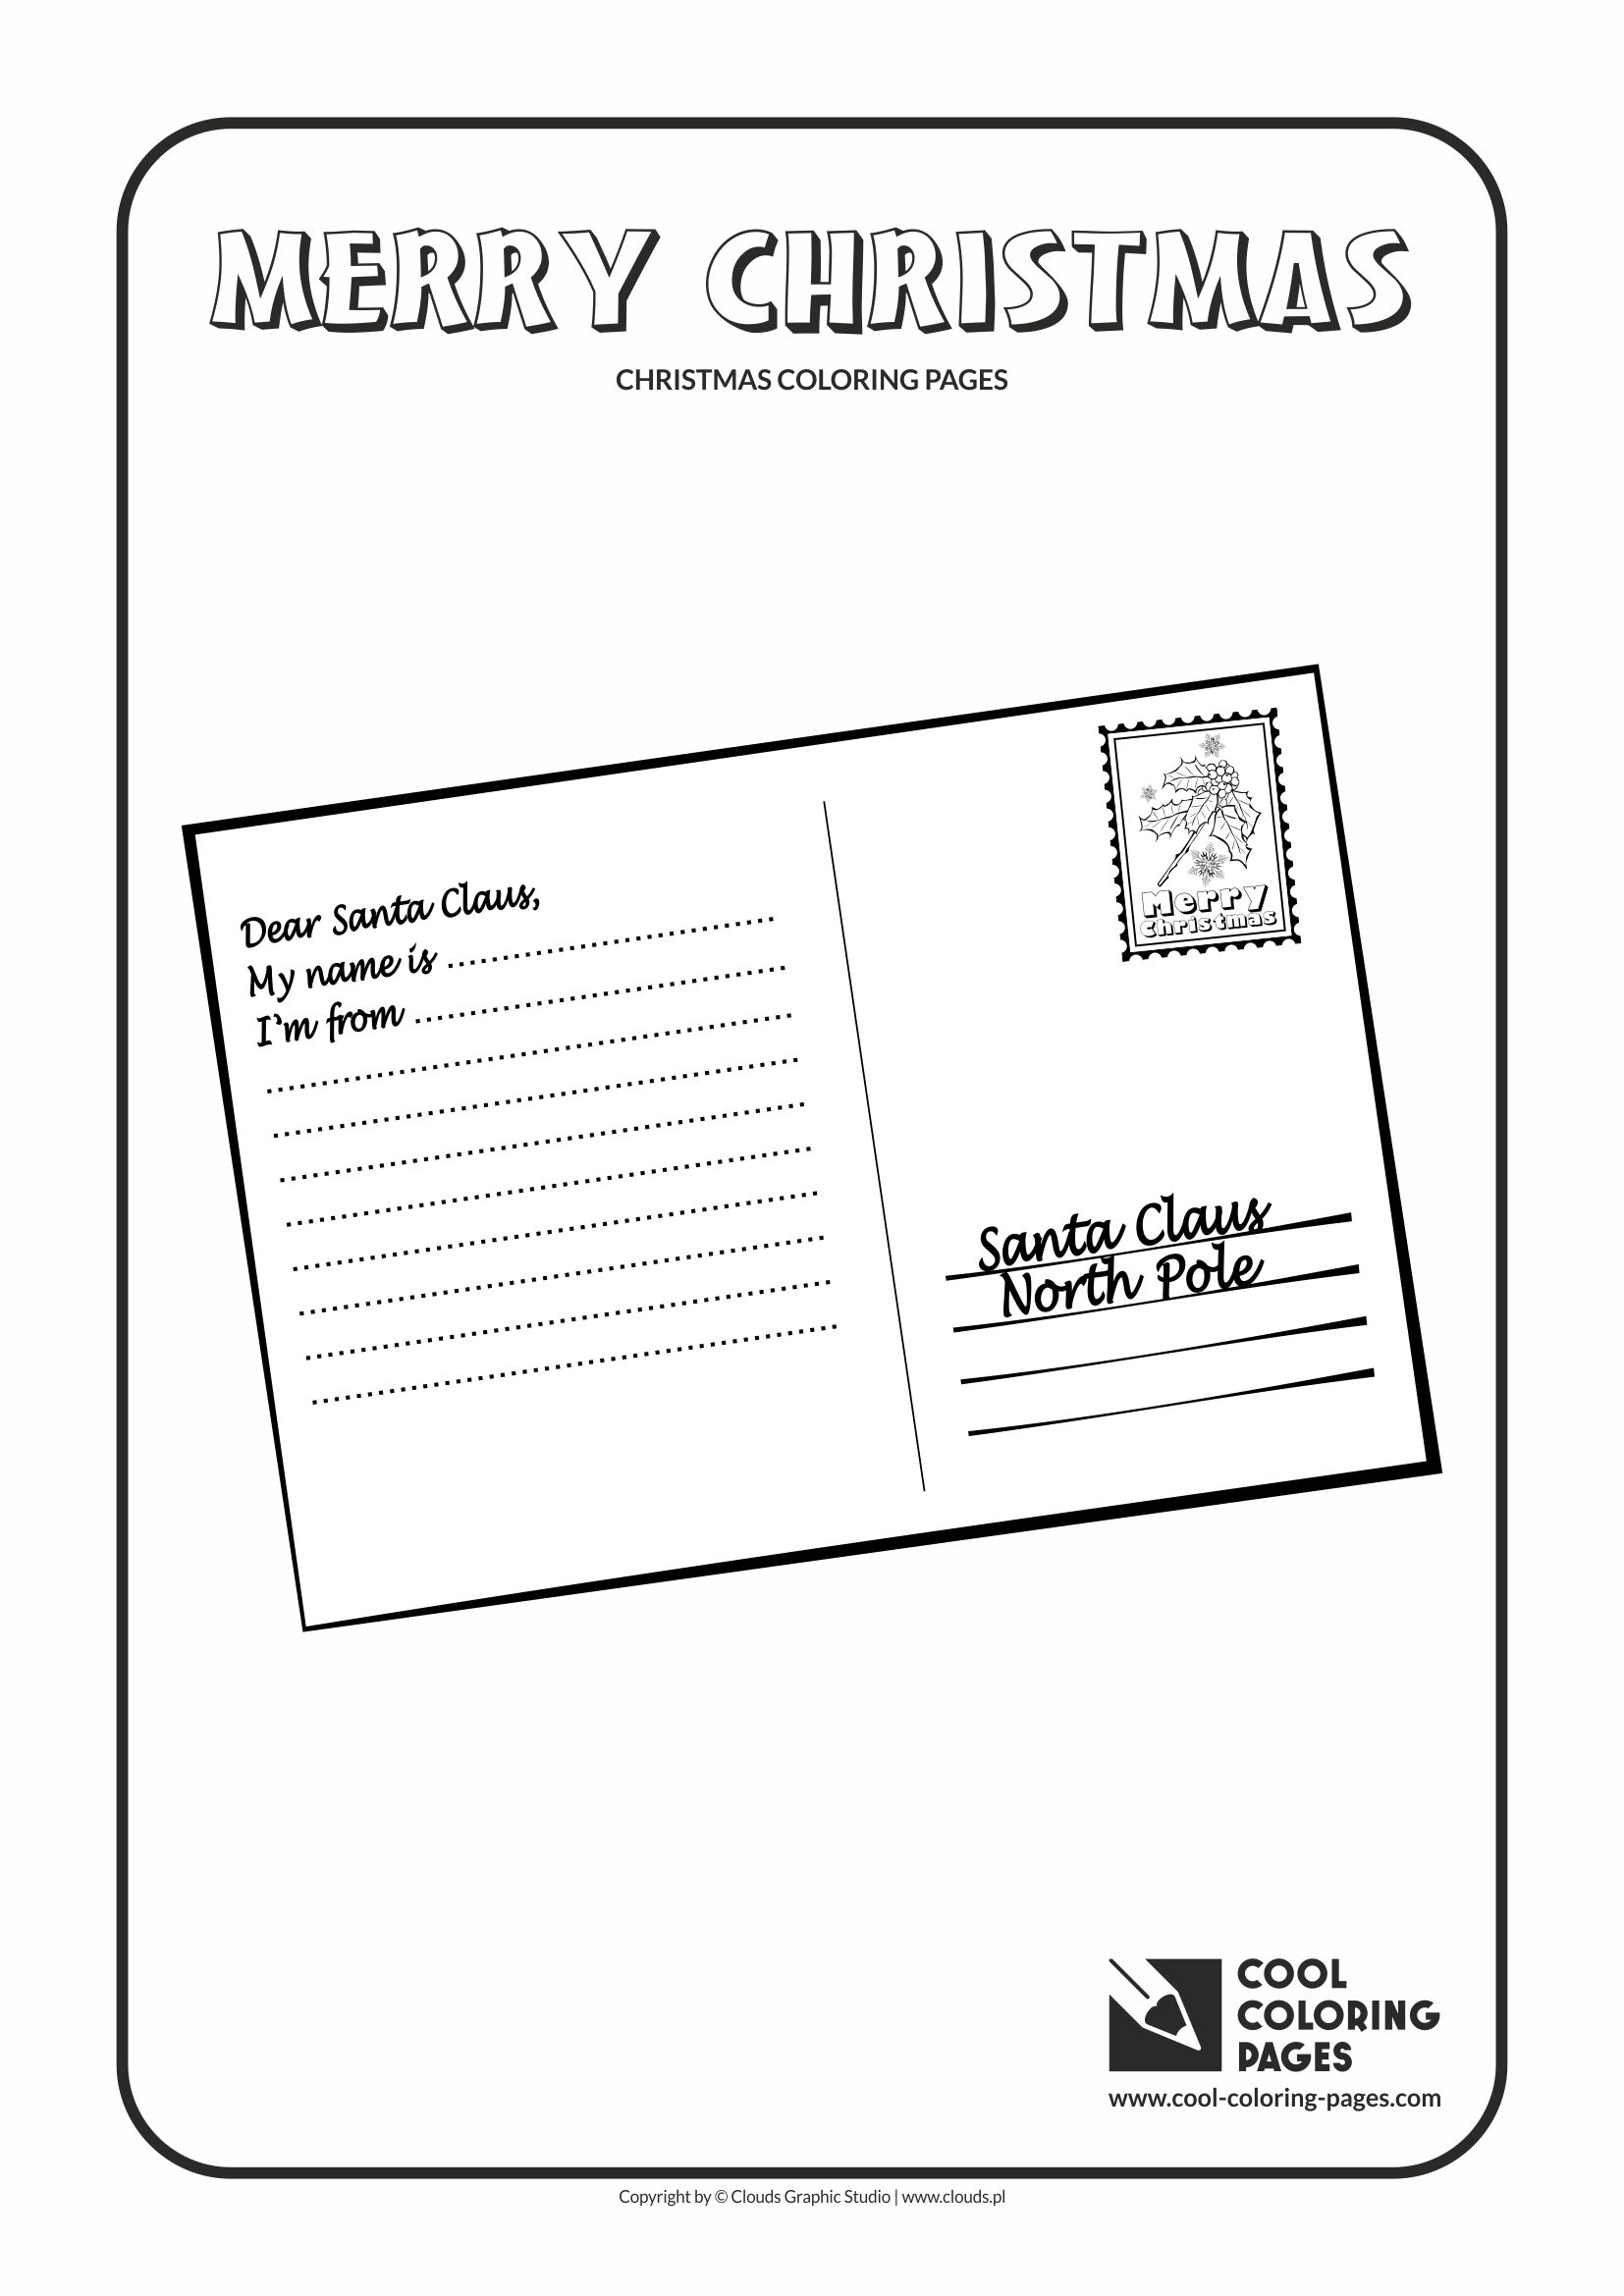 postcard template for pages - cool coloring pages christmas coloring pages cool